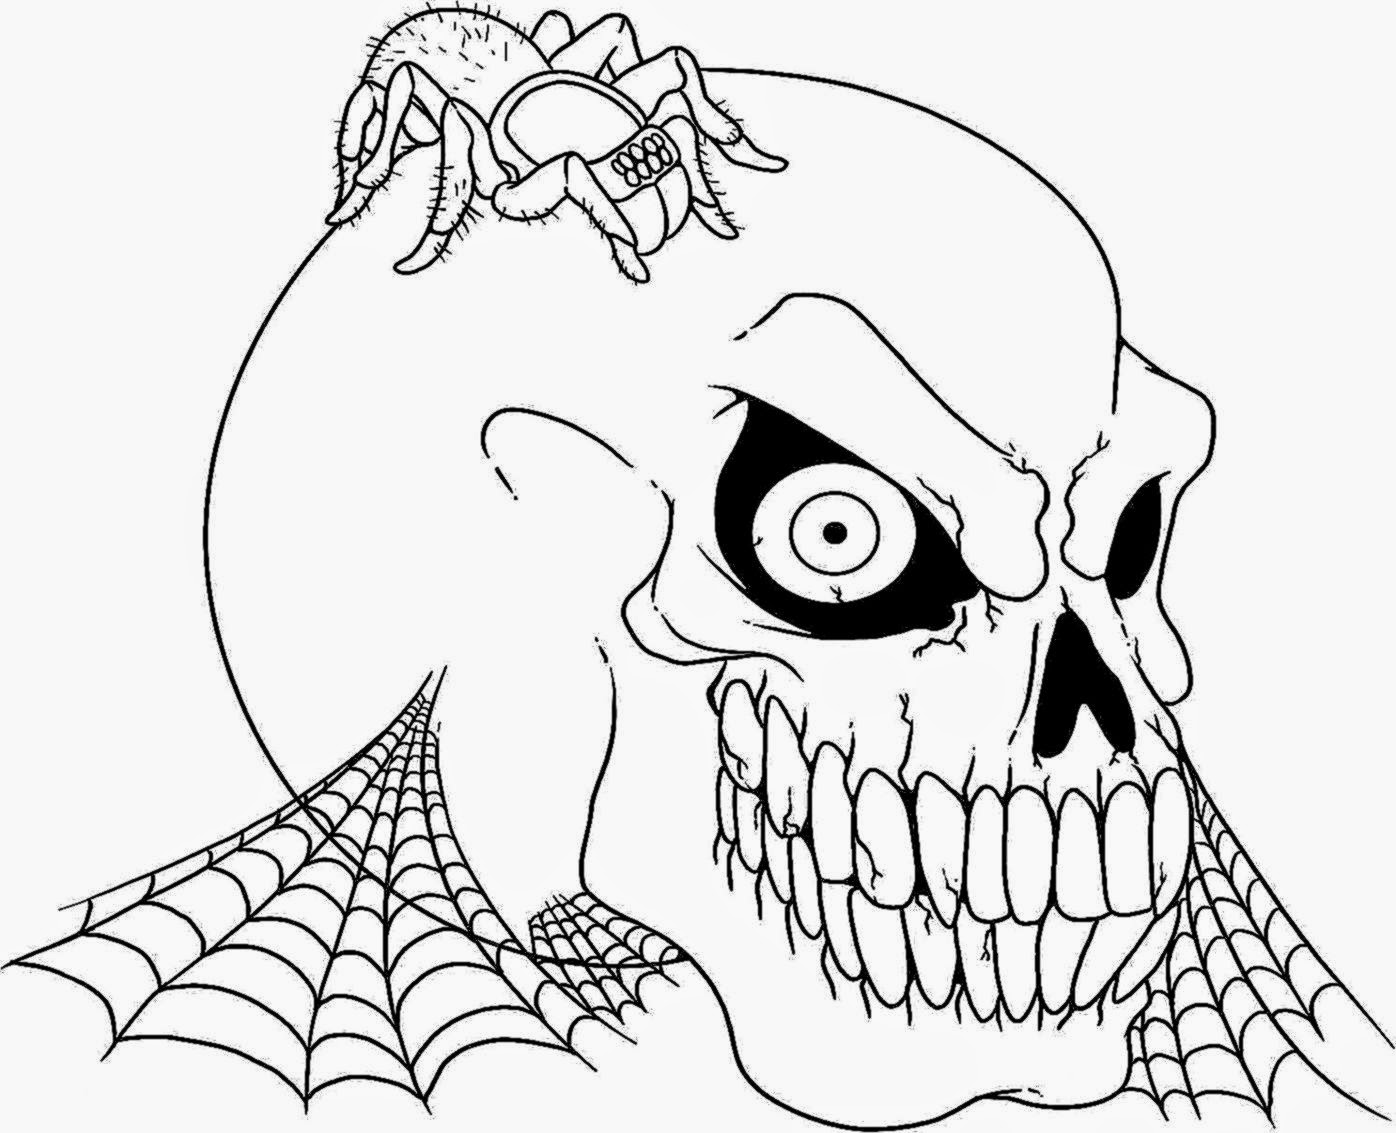 Scary Dracula Coloring Pages Freecoloring4u Com Scary Dinosaur Coloring Pages